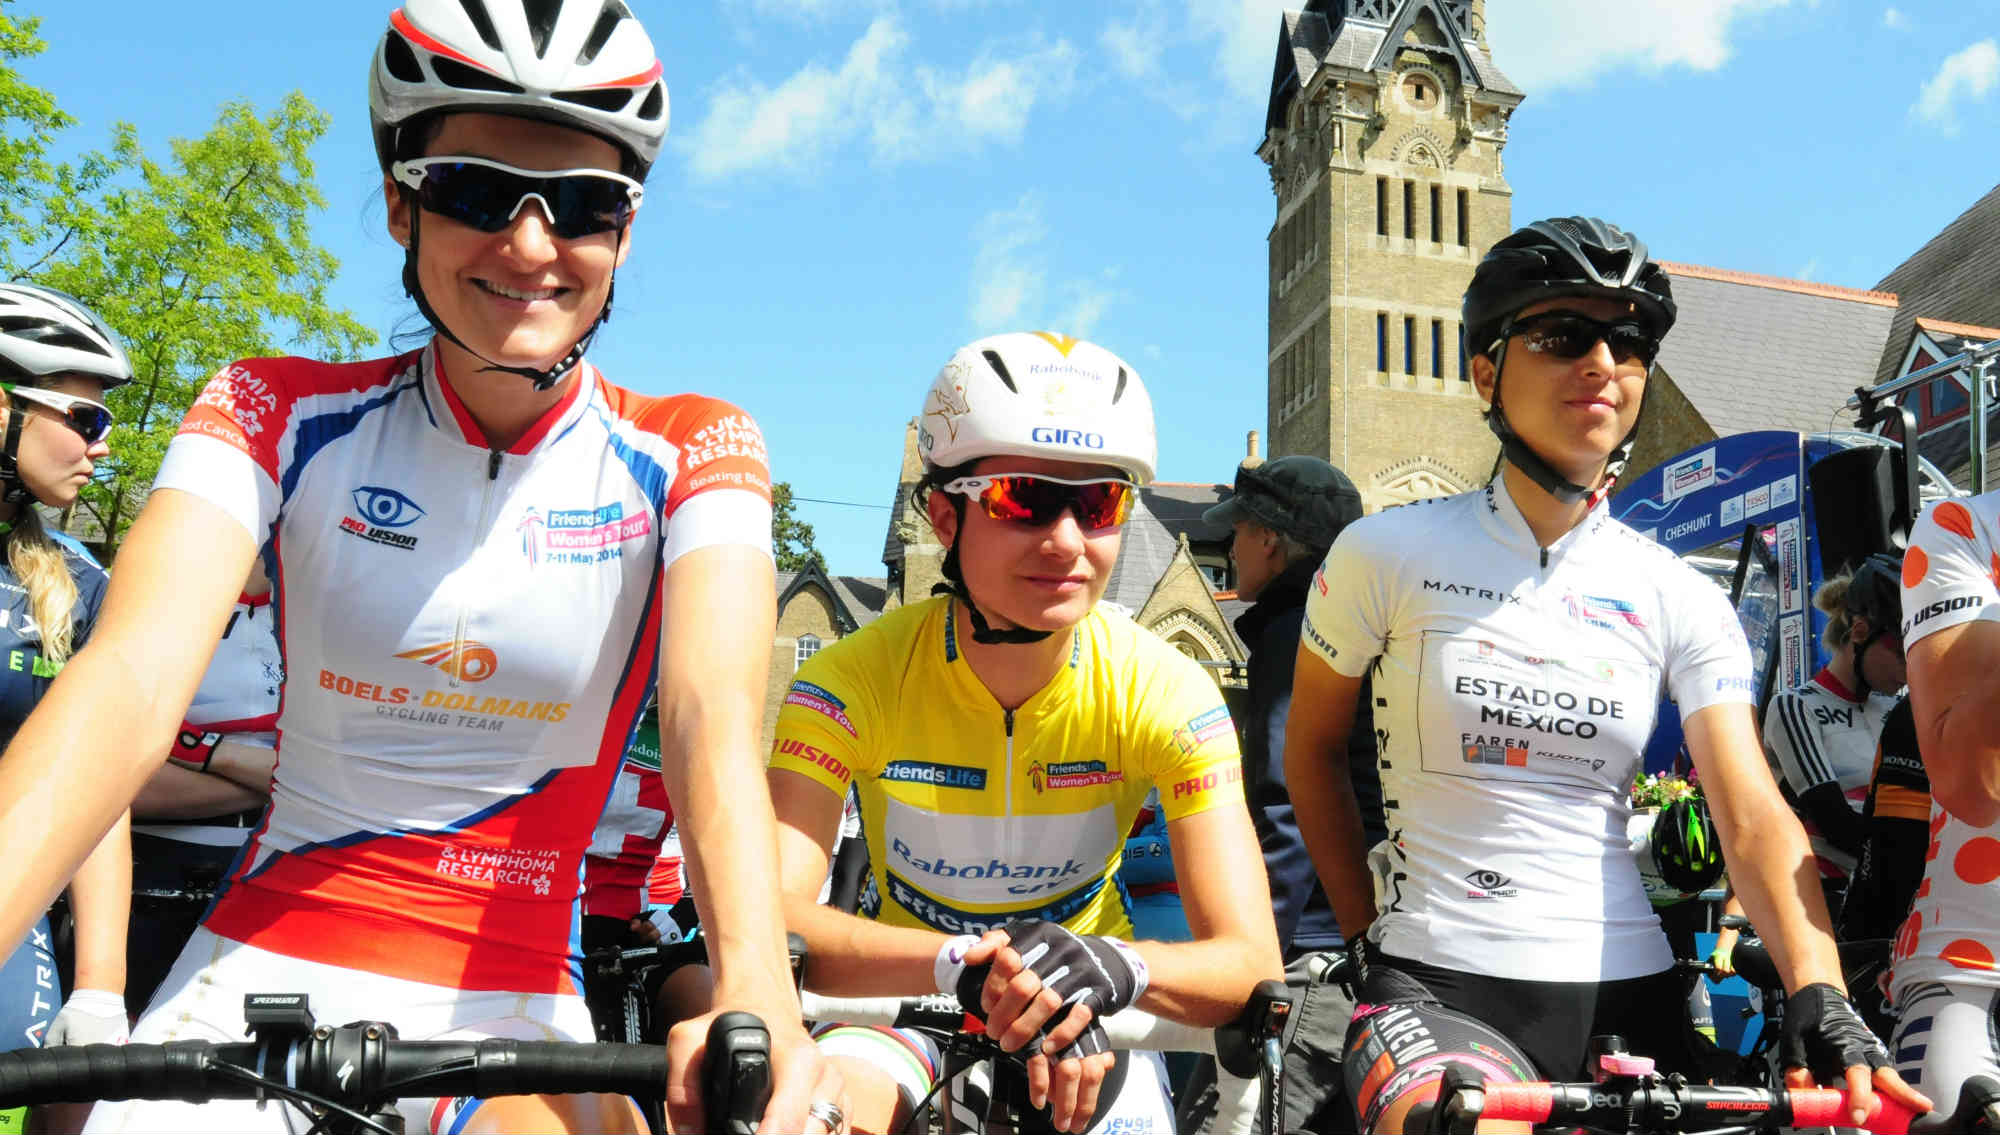 Broxbourne and Stevenage to host penultimate stage of Friends Life Women's Tour